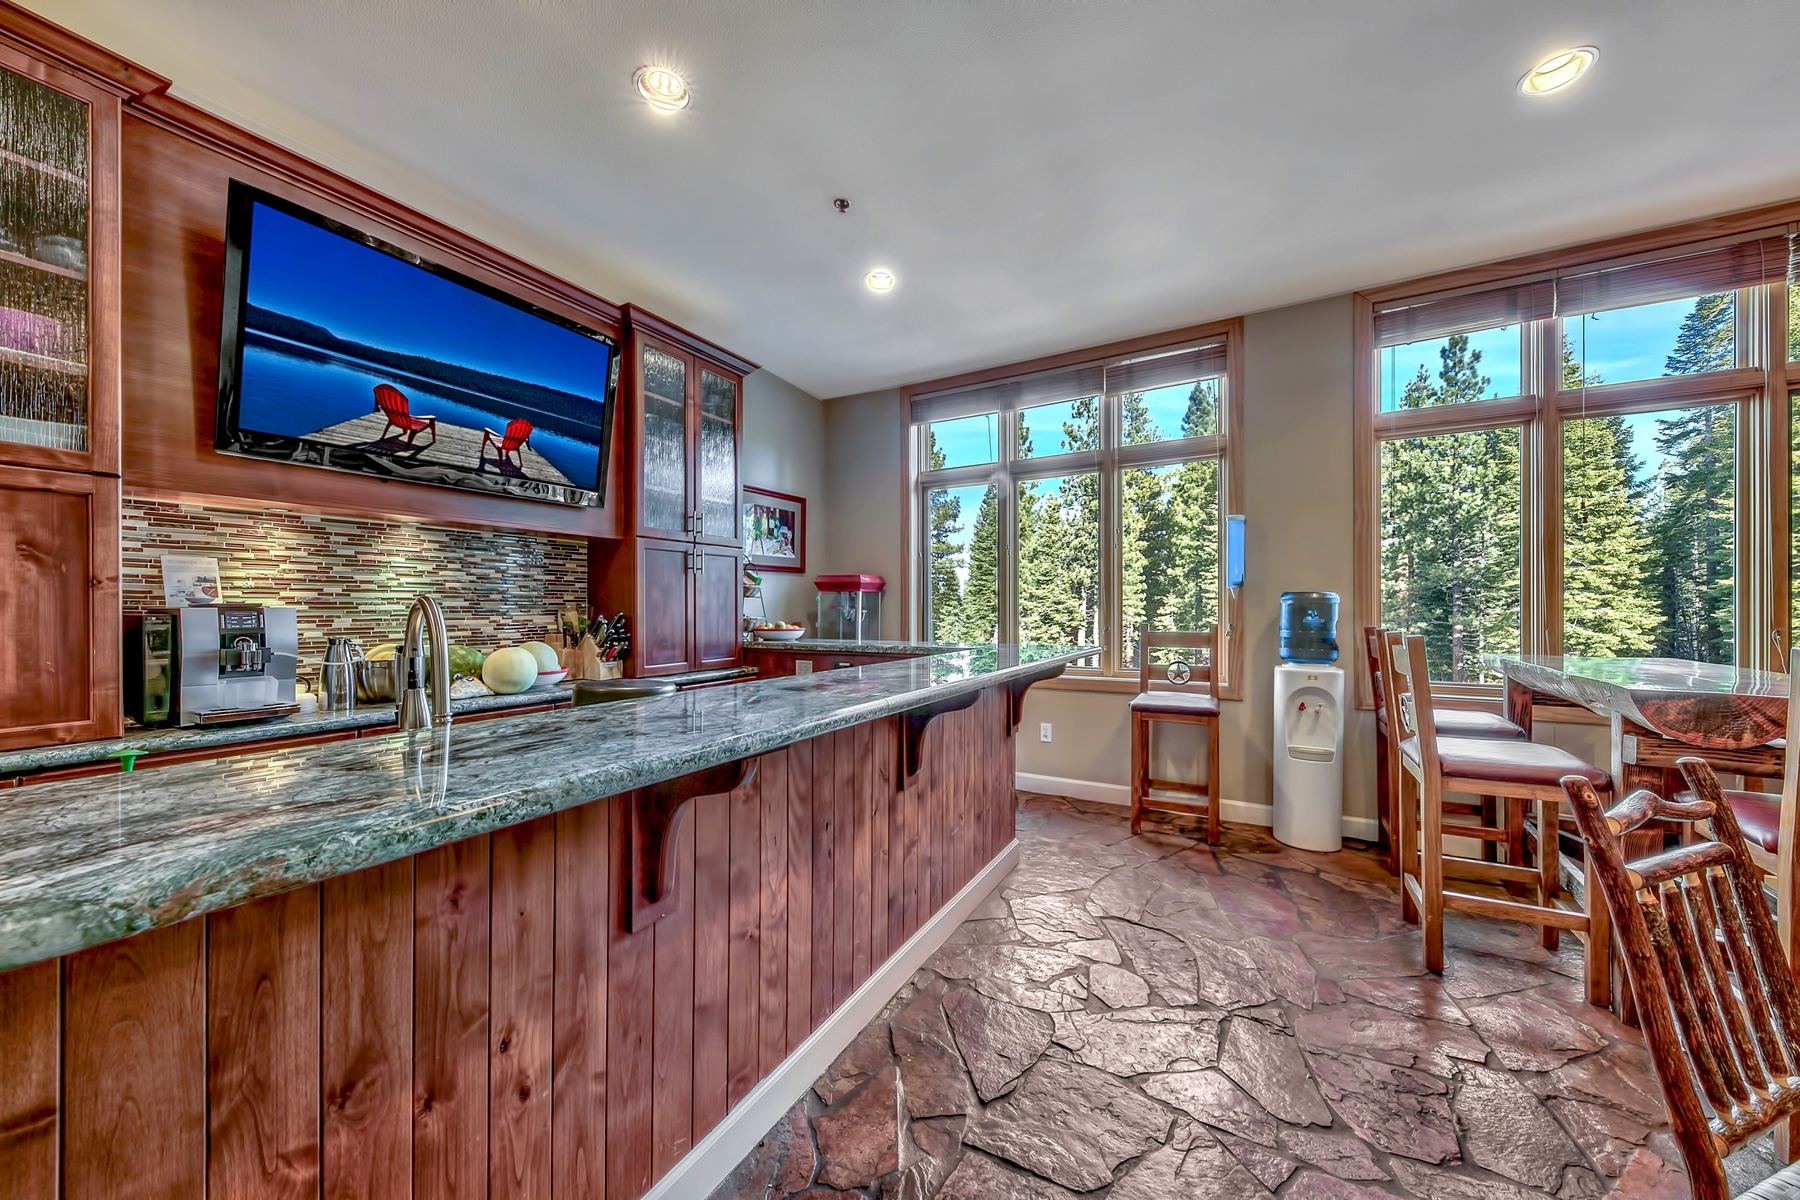 Additional photo for property listing at 2100 W North Village Drive #303/#7, Truckee CA 96161 2100 W North Village Drive #303/#7 特拉基, 加利福尼亚州 96161 美国